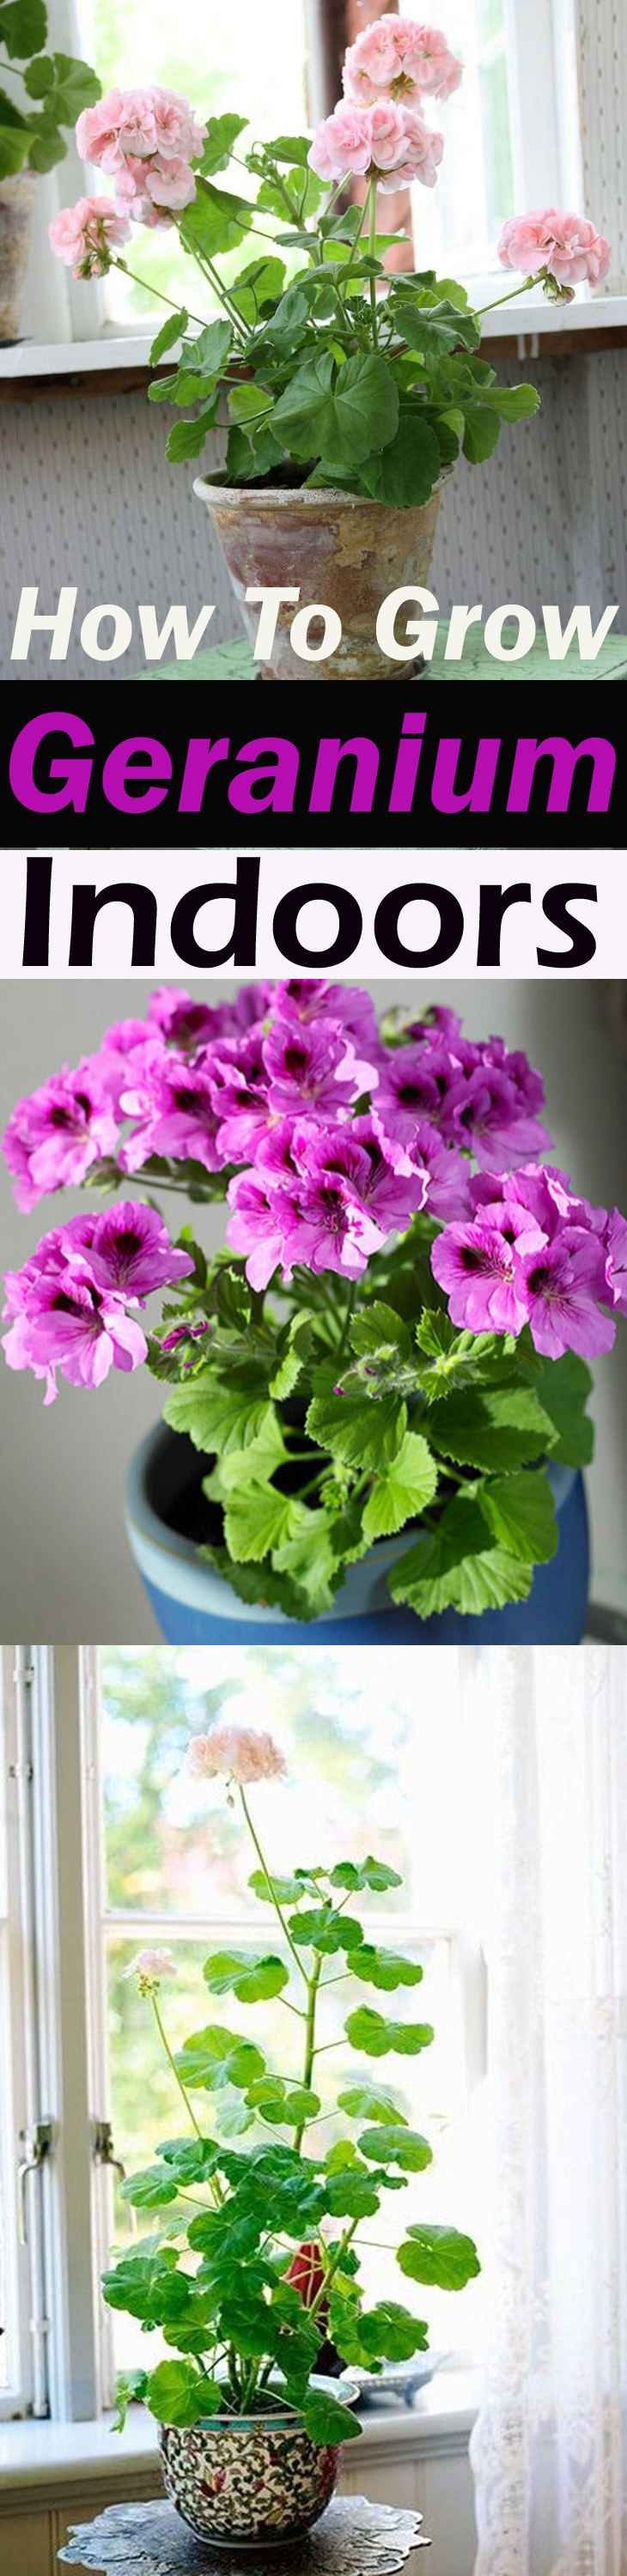 Learn how to grow geranium indoors, growing geranium as a houseplant will allow you to have them year round. Check out!